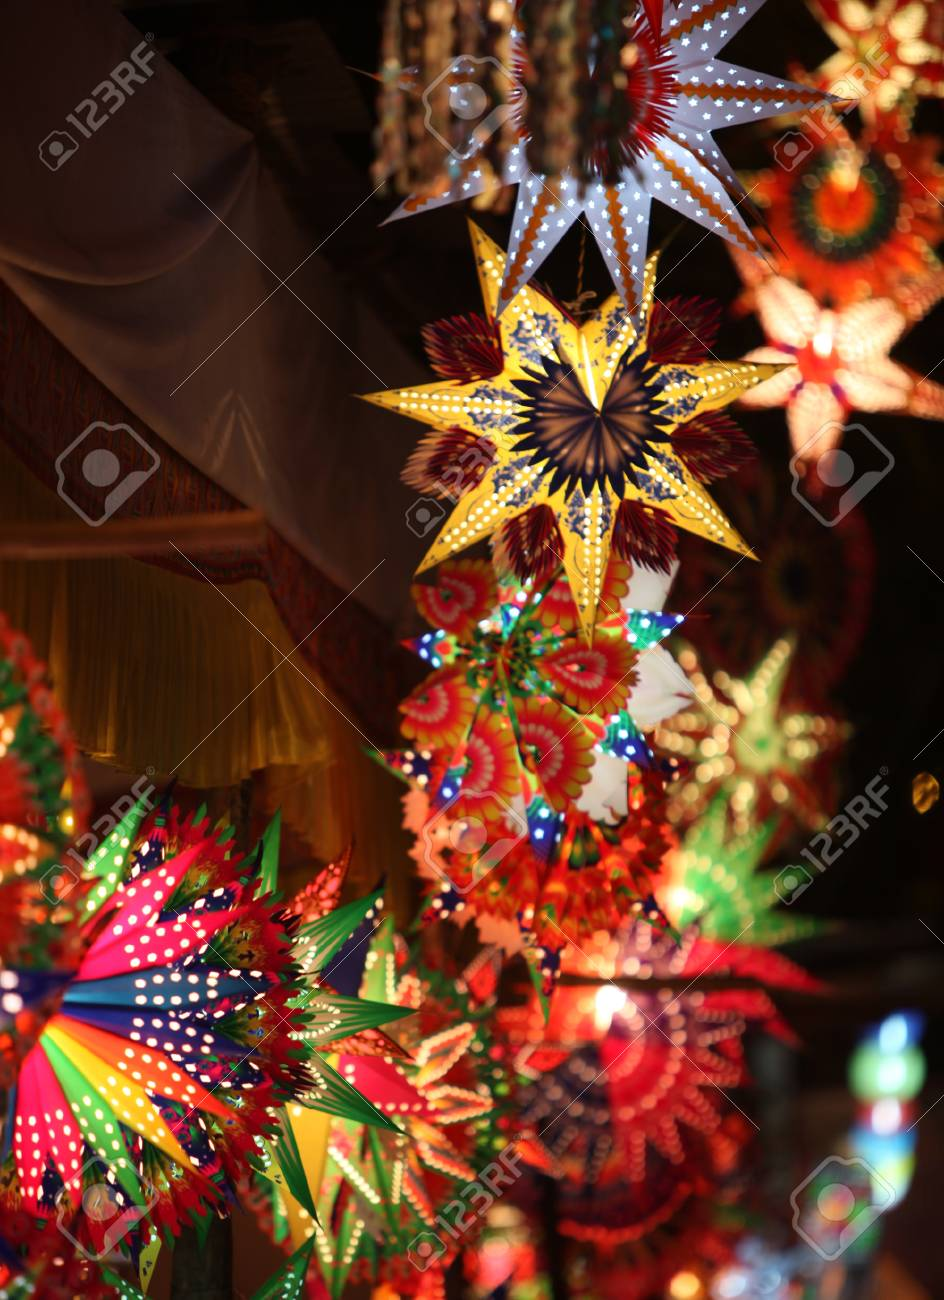 Christmas Festival In India.Beautiful Traditional Lanterns For Sale In A Shop On Occasion